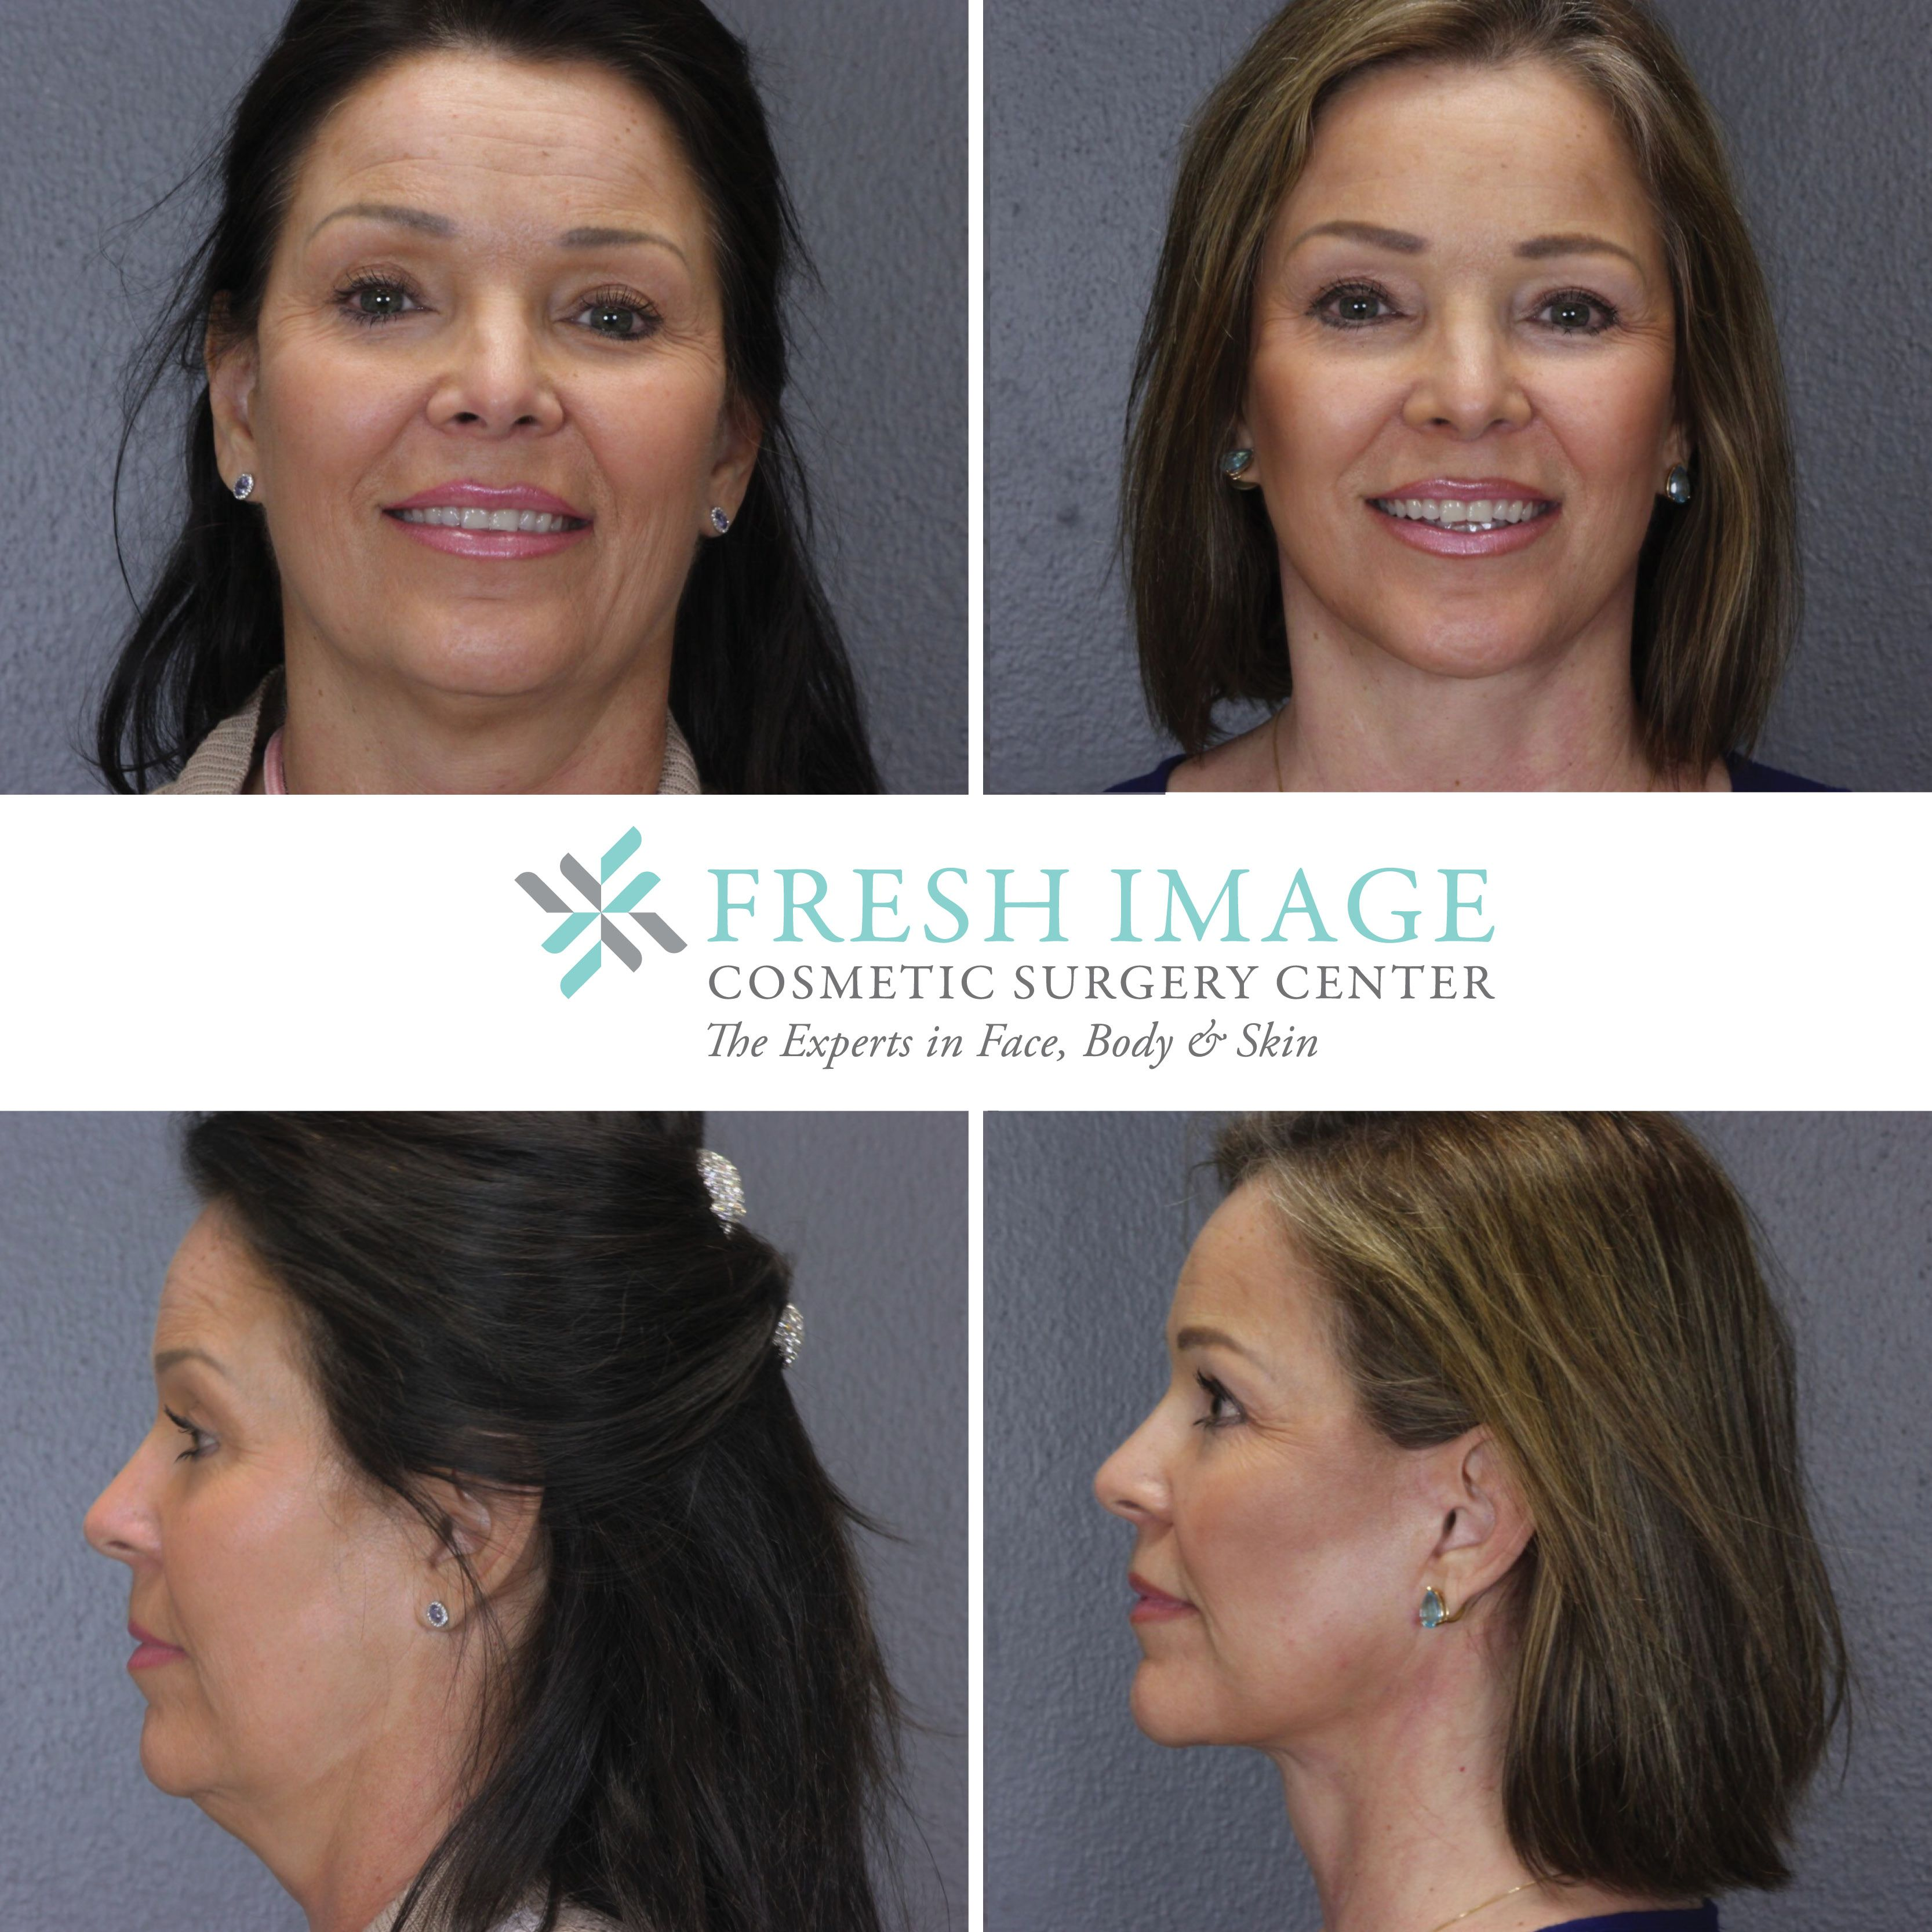 Re piercing nose scar tissue  Fresh Image Cosmetic Surgery Center freshimagetexas on Pinterest